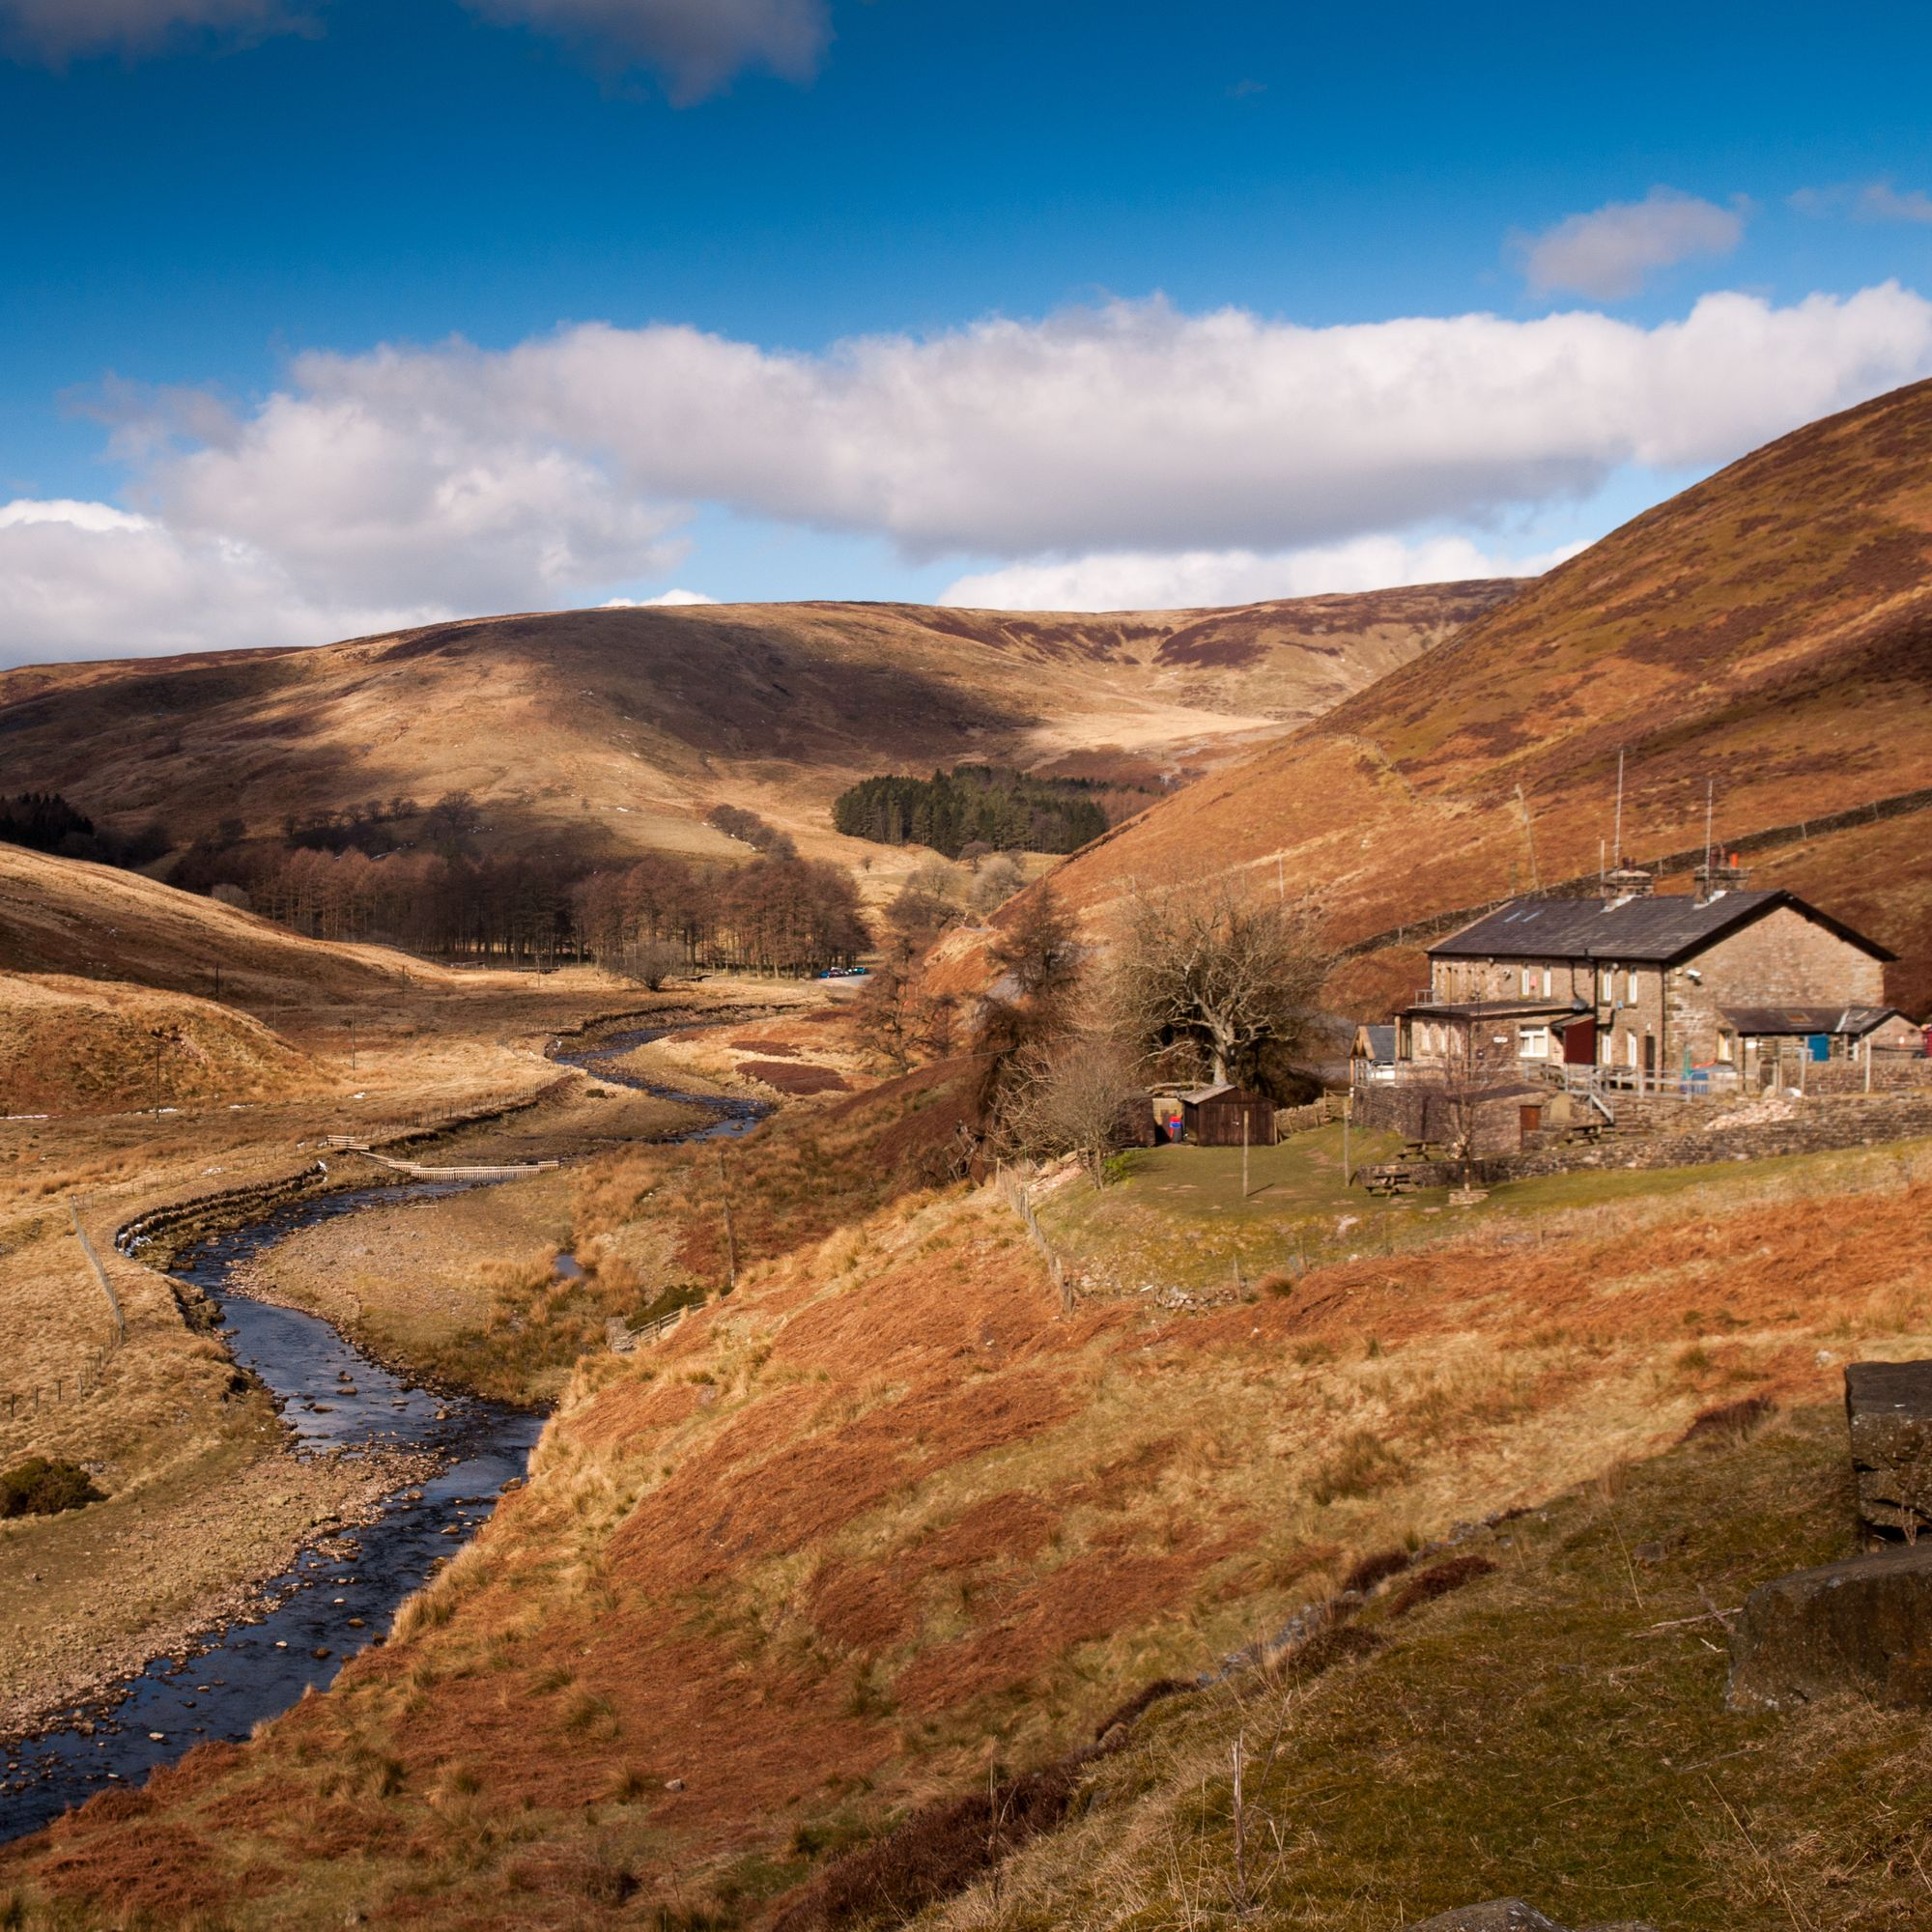 Trough of Bowland valley in Lancashire